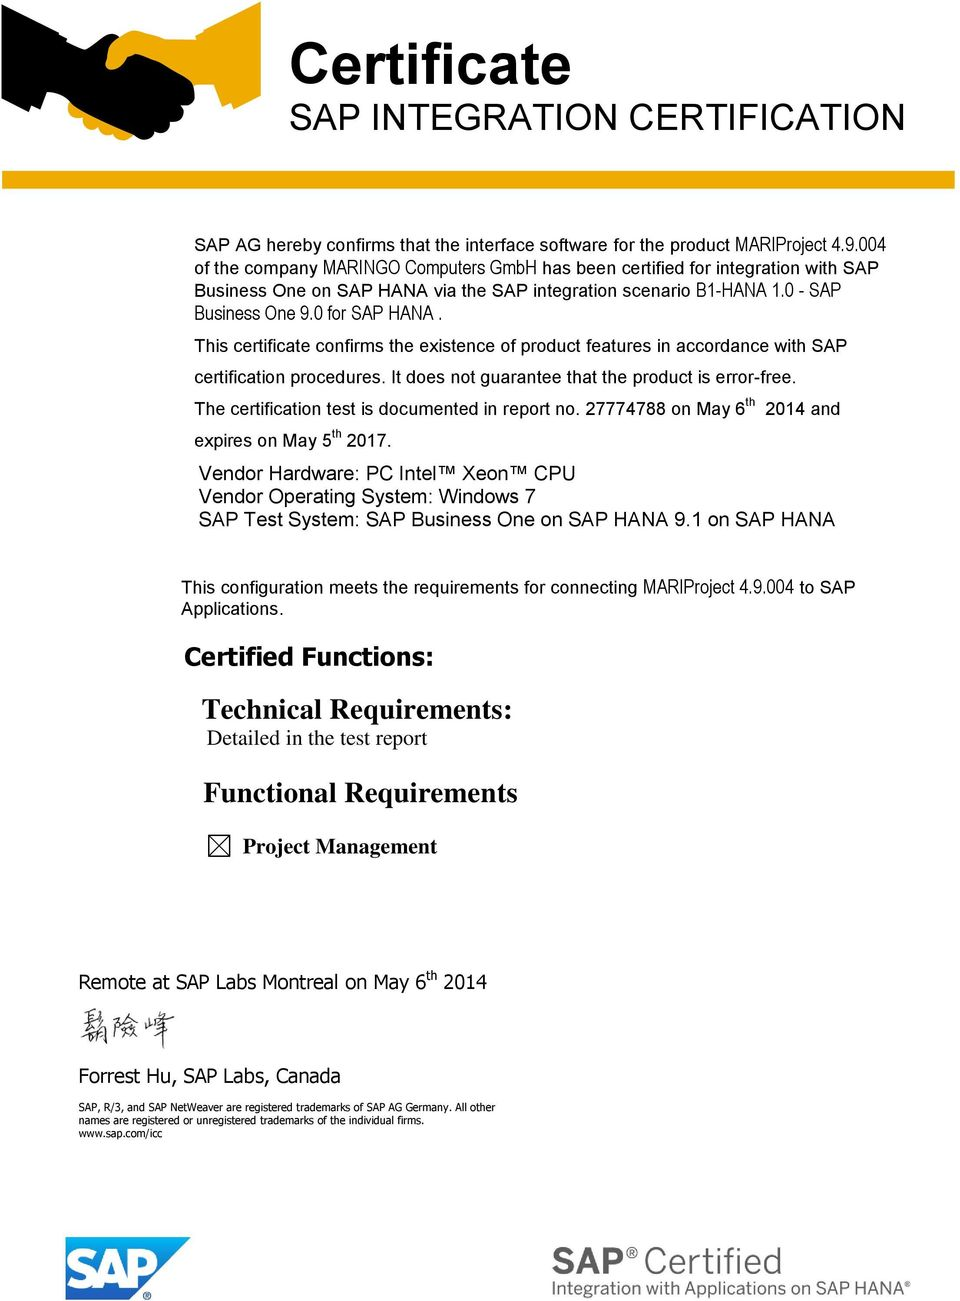 This certificate confirms the existence of product features in accordance with SAP certification procedures. It does not guarantee that the product is error-free.